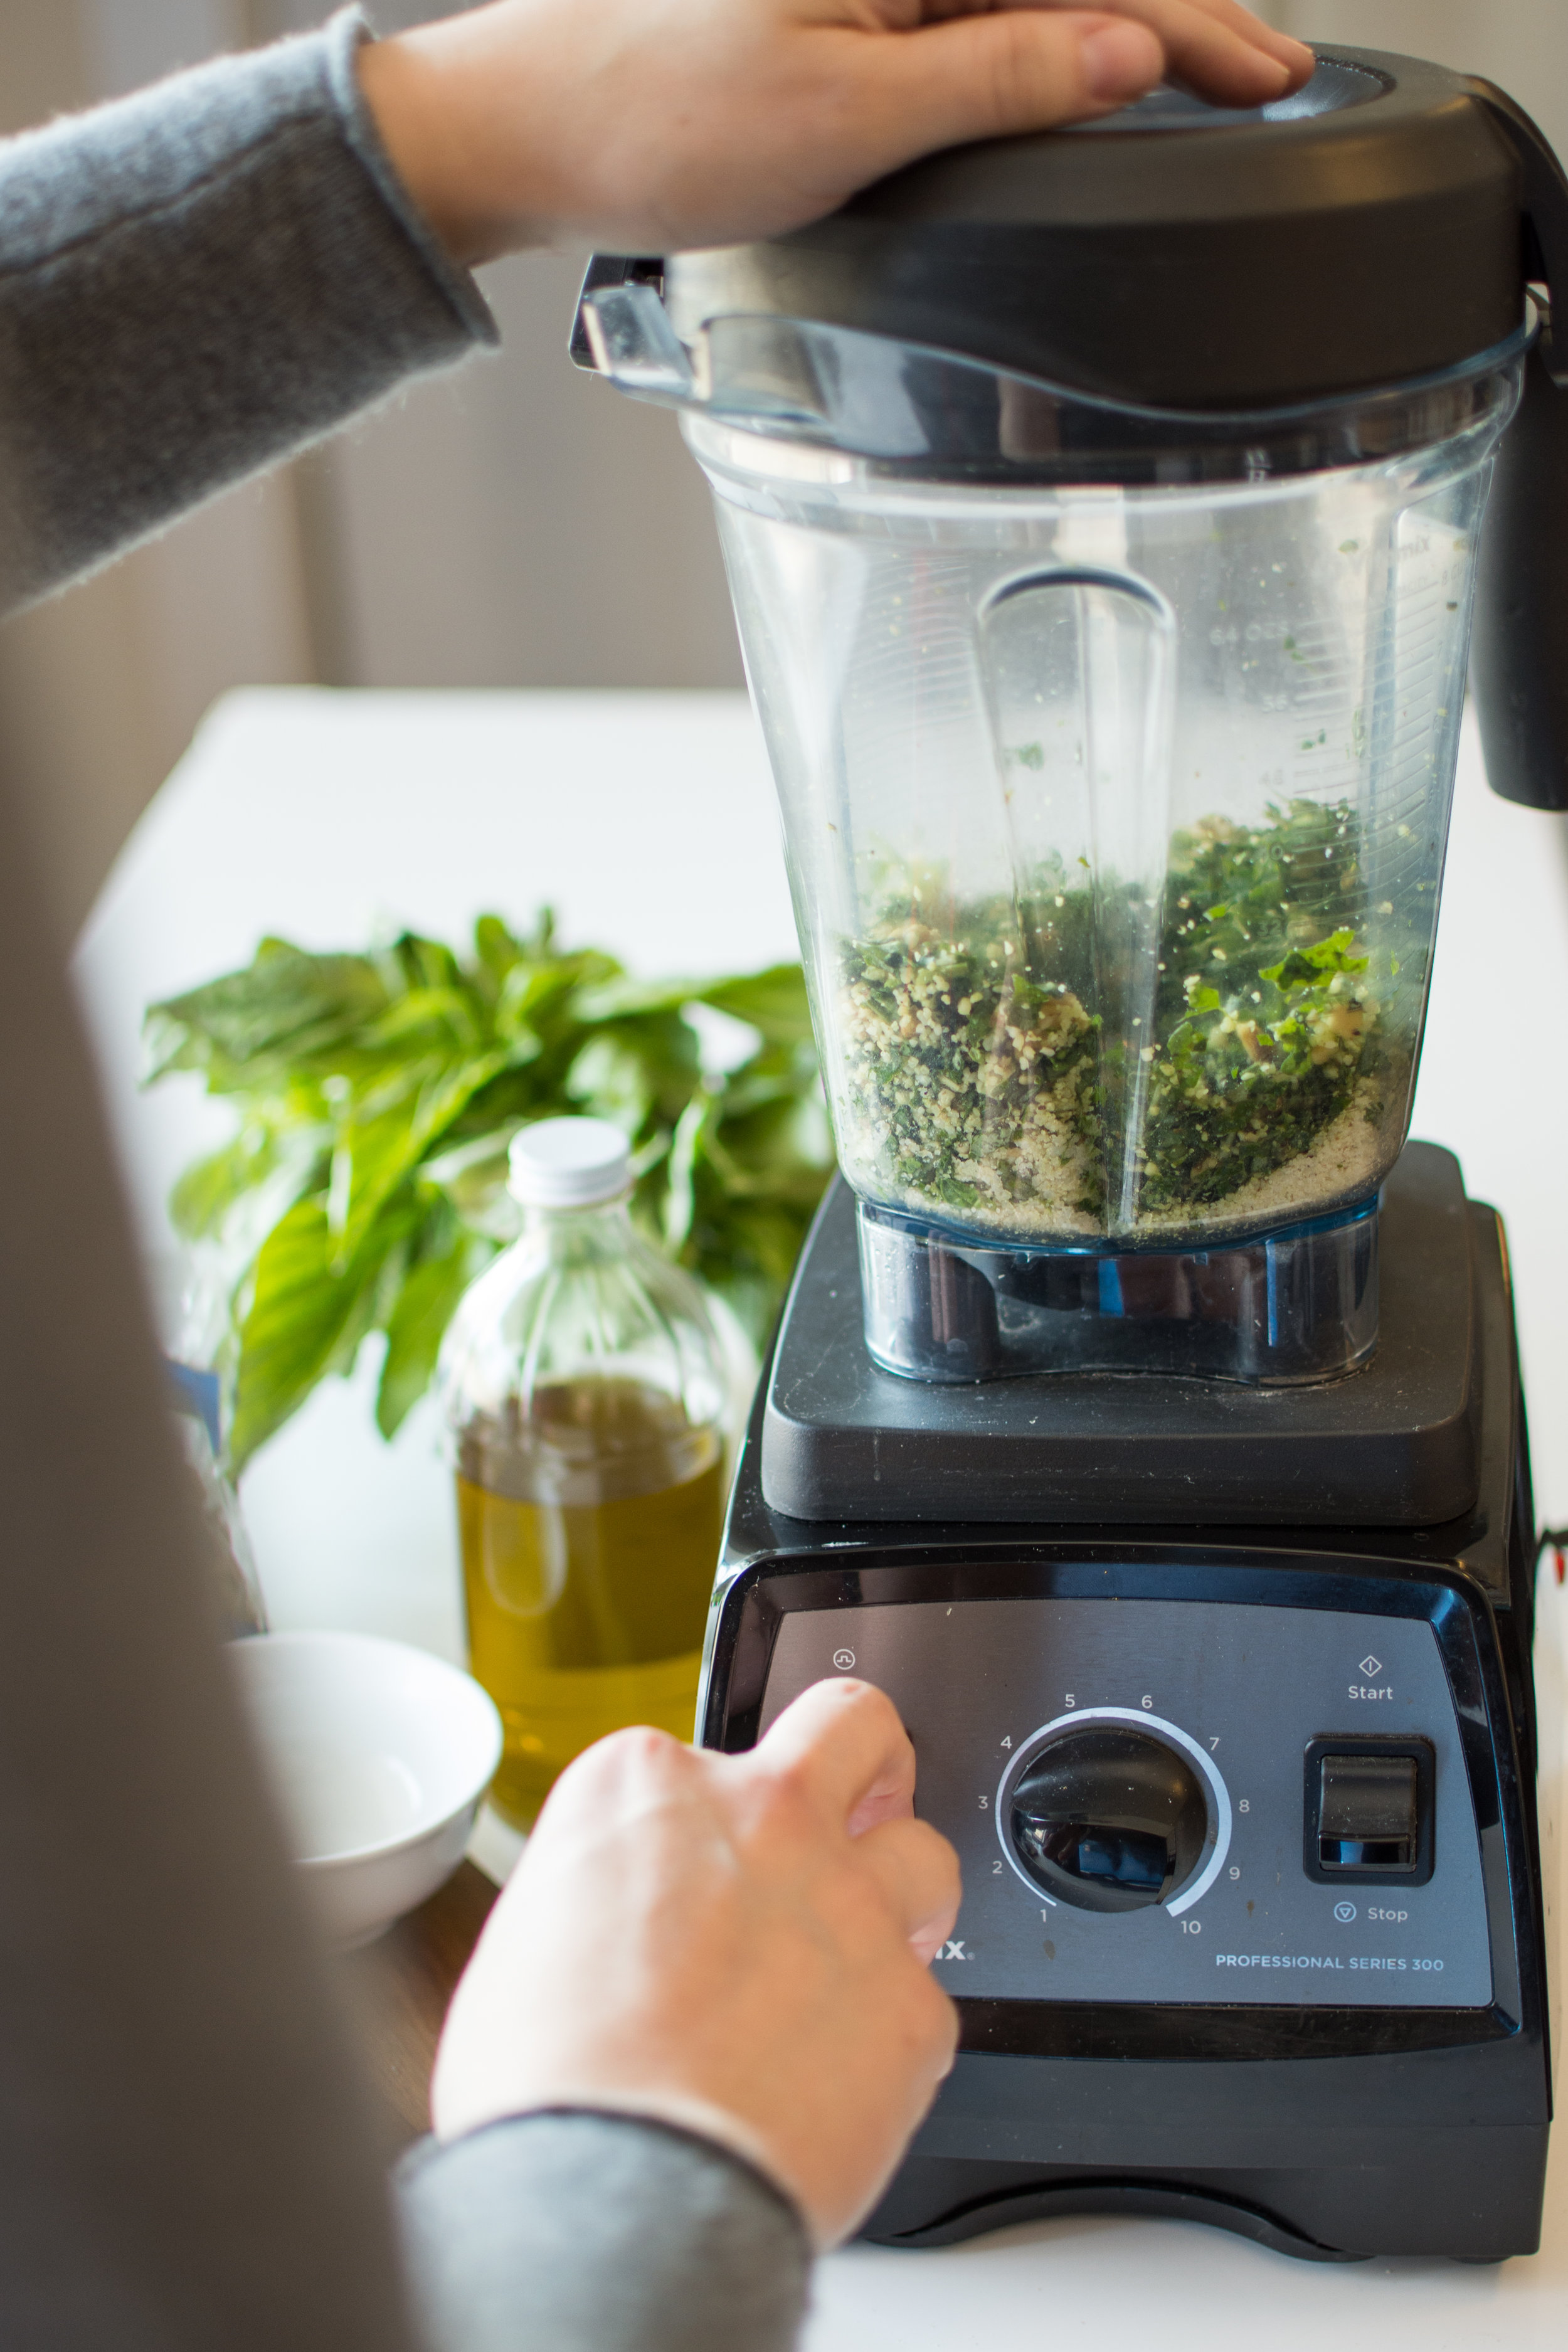 Process all ingredients until mixture resembles a paste, about 1 minute, scraping down the sides of your blender if needed. With the processor running, slowly pour the 2/3 olive oil through the feed tube and process until the pesto is thoroughly blended.